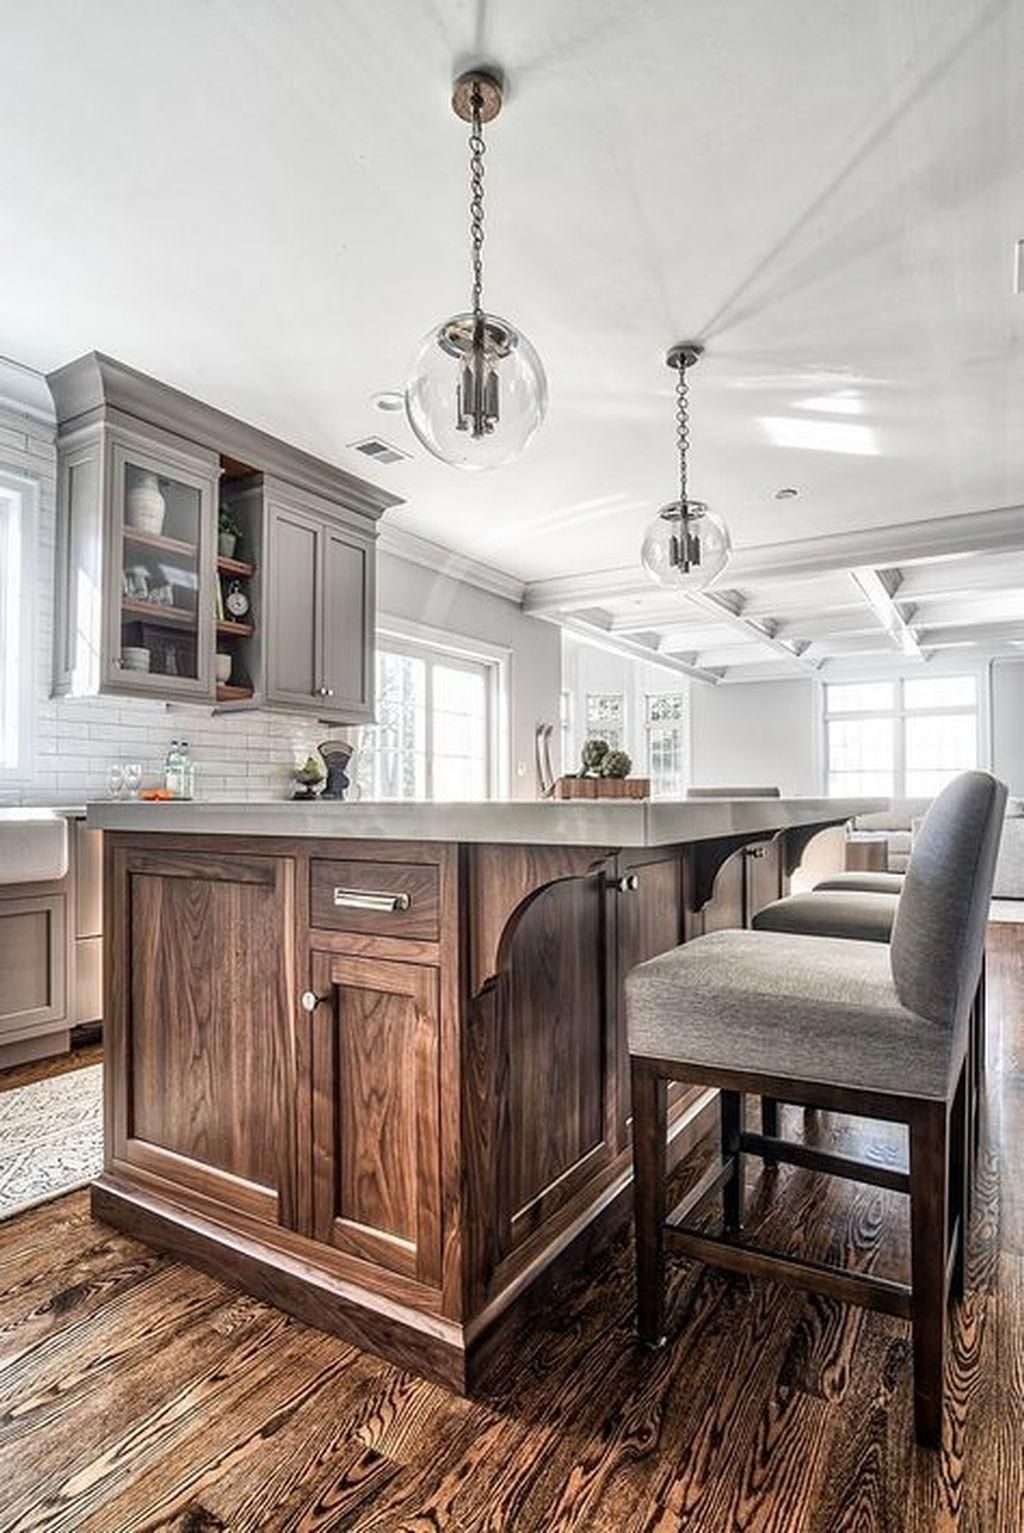 46 Amazing Painted Kitchen Cabinets Greykitchen Painting Kitchen Cabinets Grey Kitchen Designs Kitchen Remodel